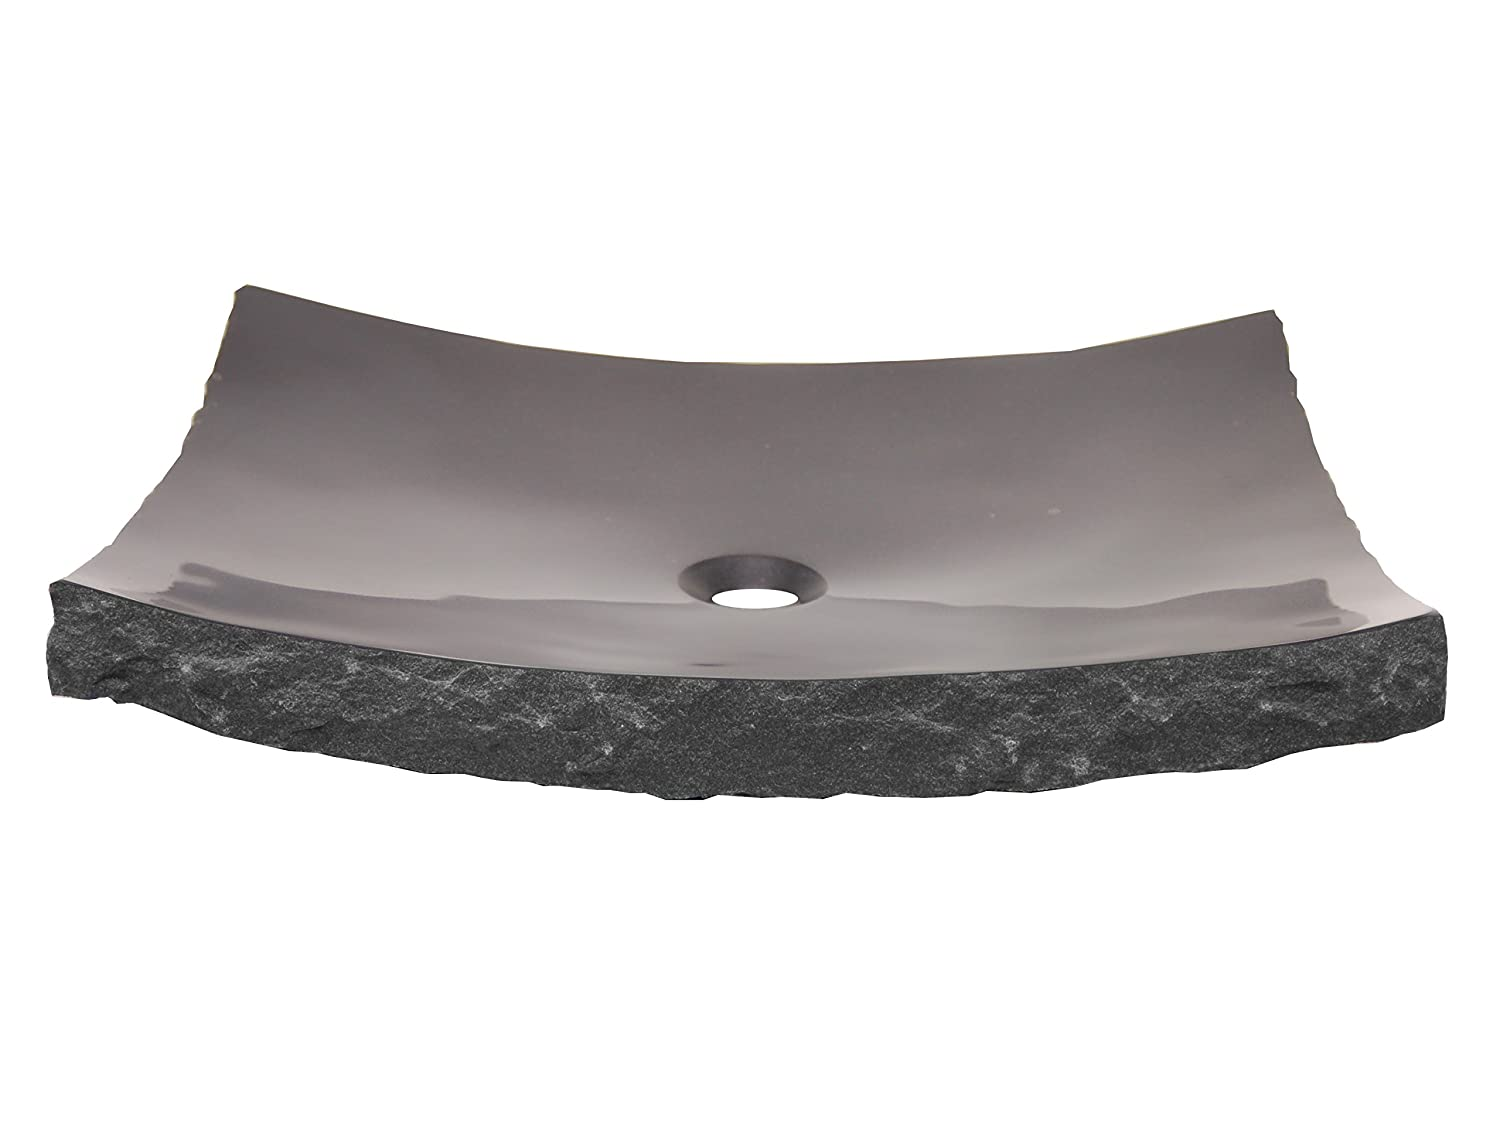 Gentil Eden Bath EB_S014BK P Large Black Granite Zen Stone Vessel Sink      Amazon.com